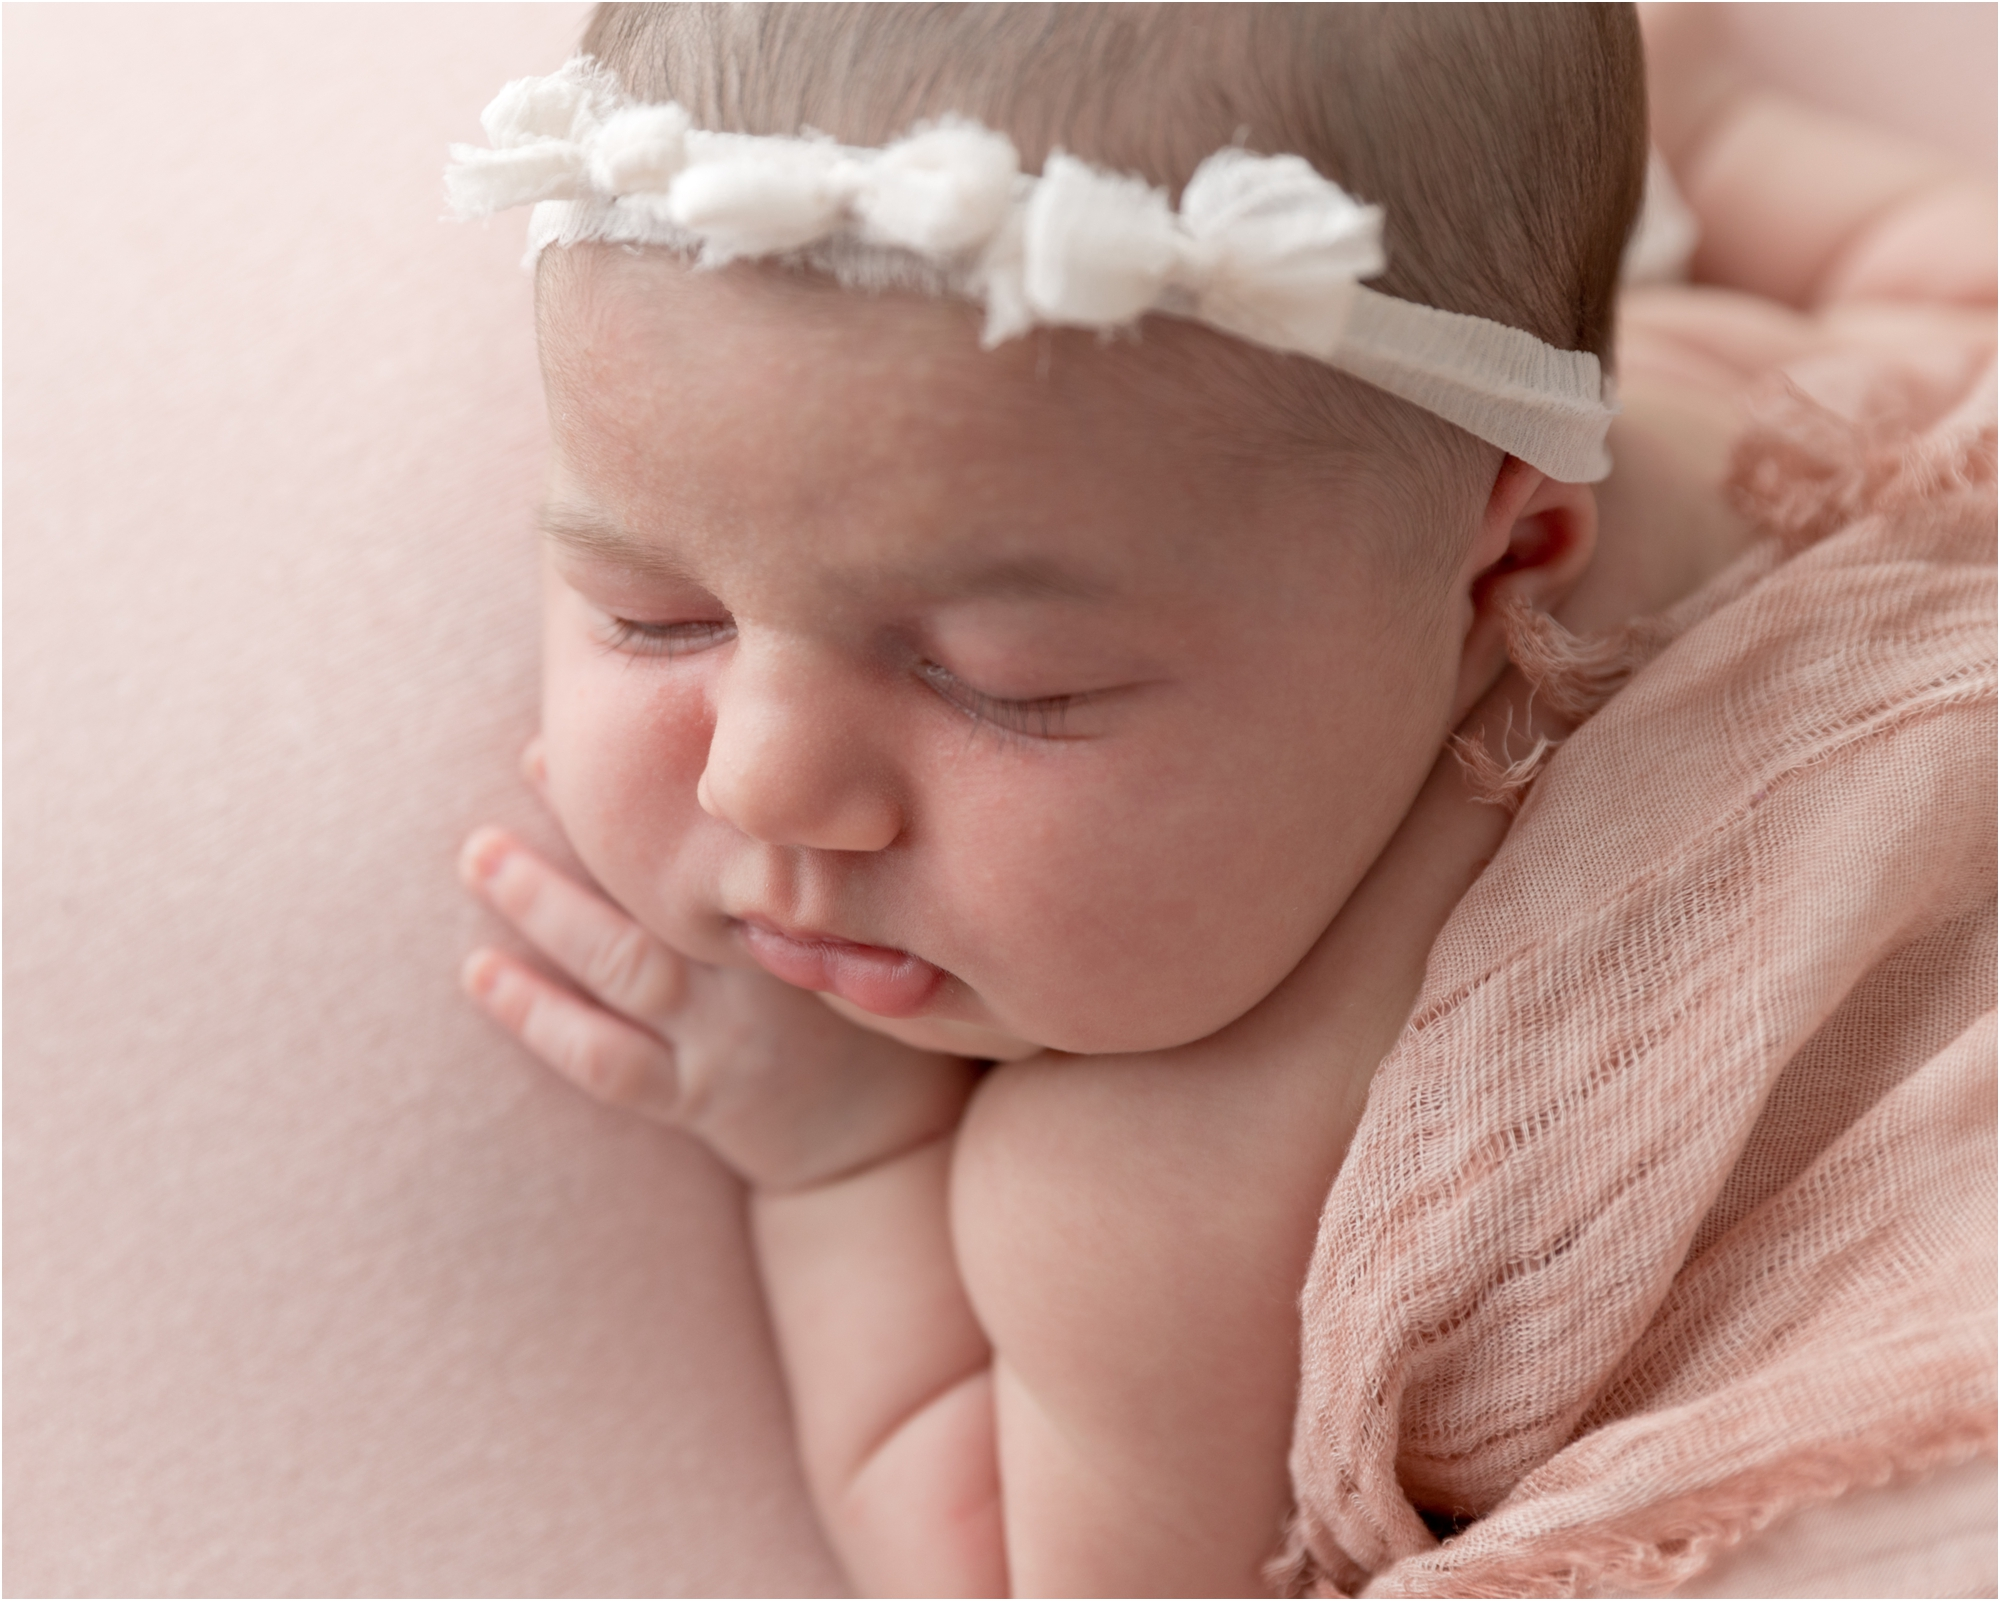 Newborn sleeping on pink backdrop with pink gauze wrap. Photo by Lifetime of Clicks Photography.